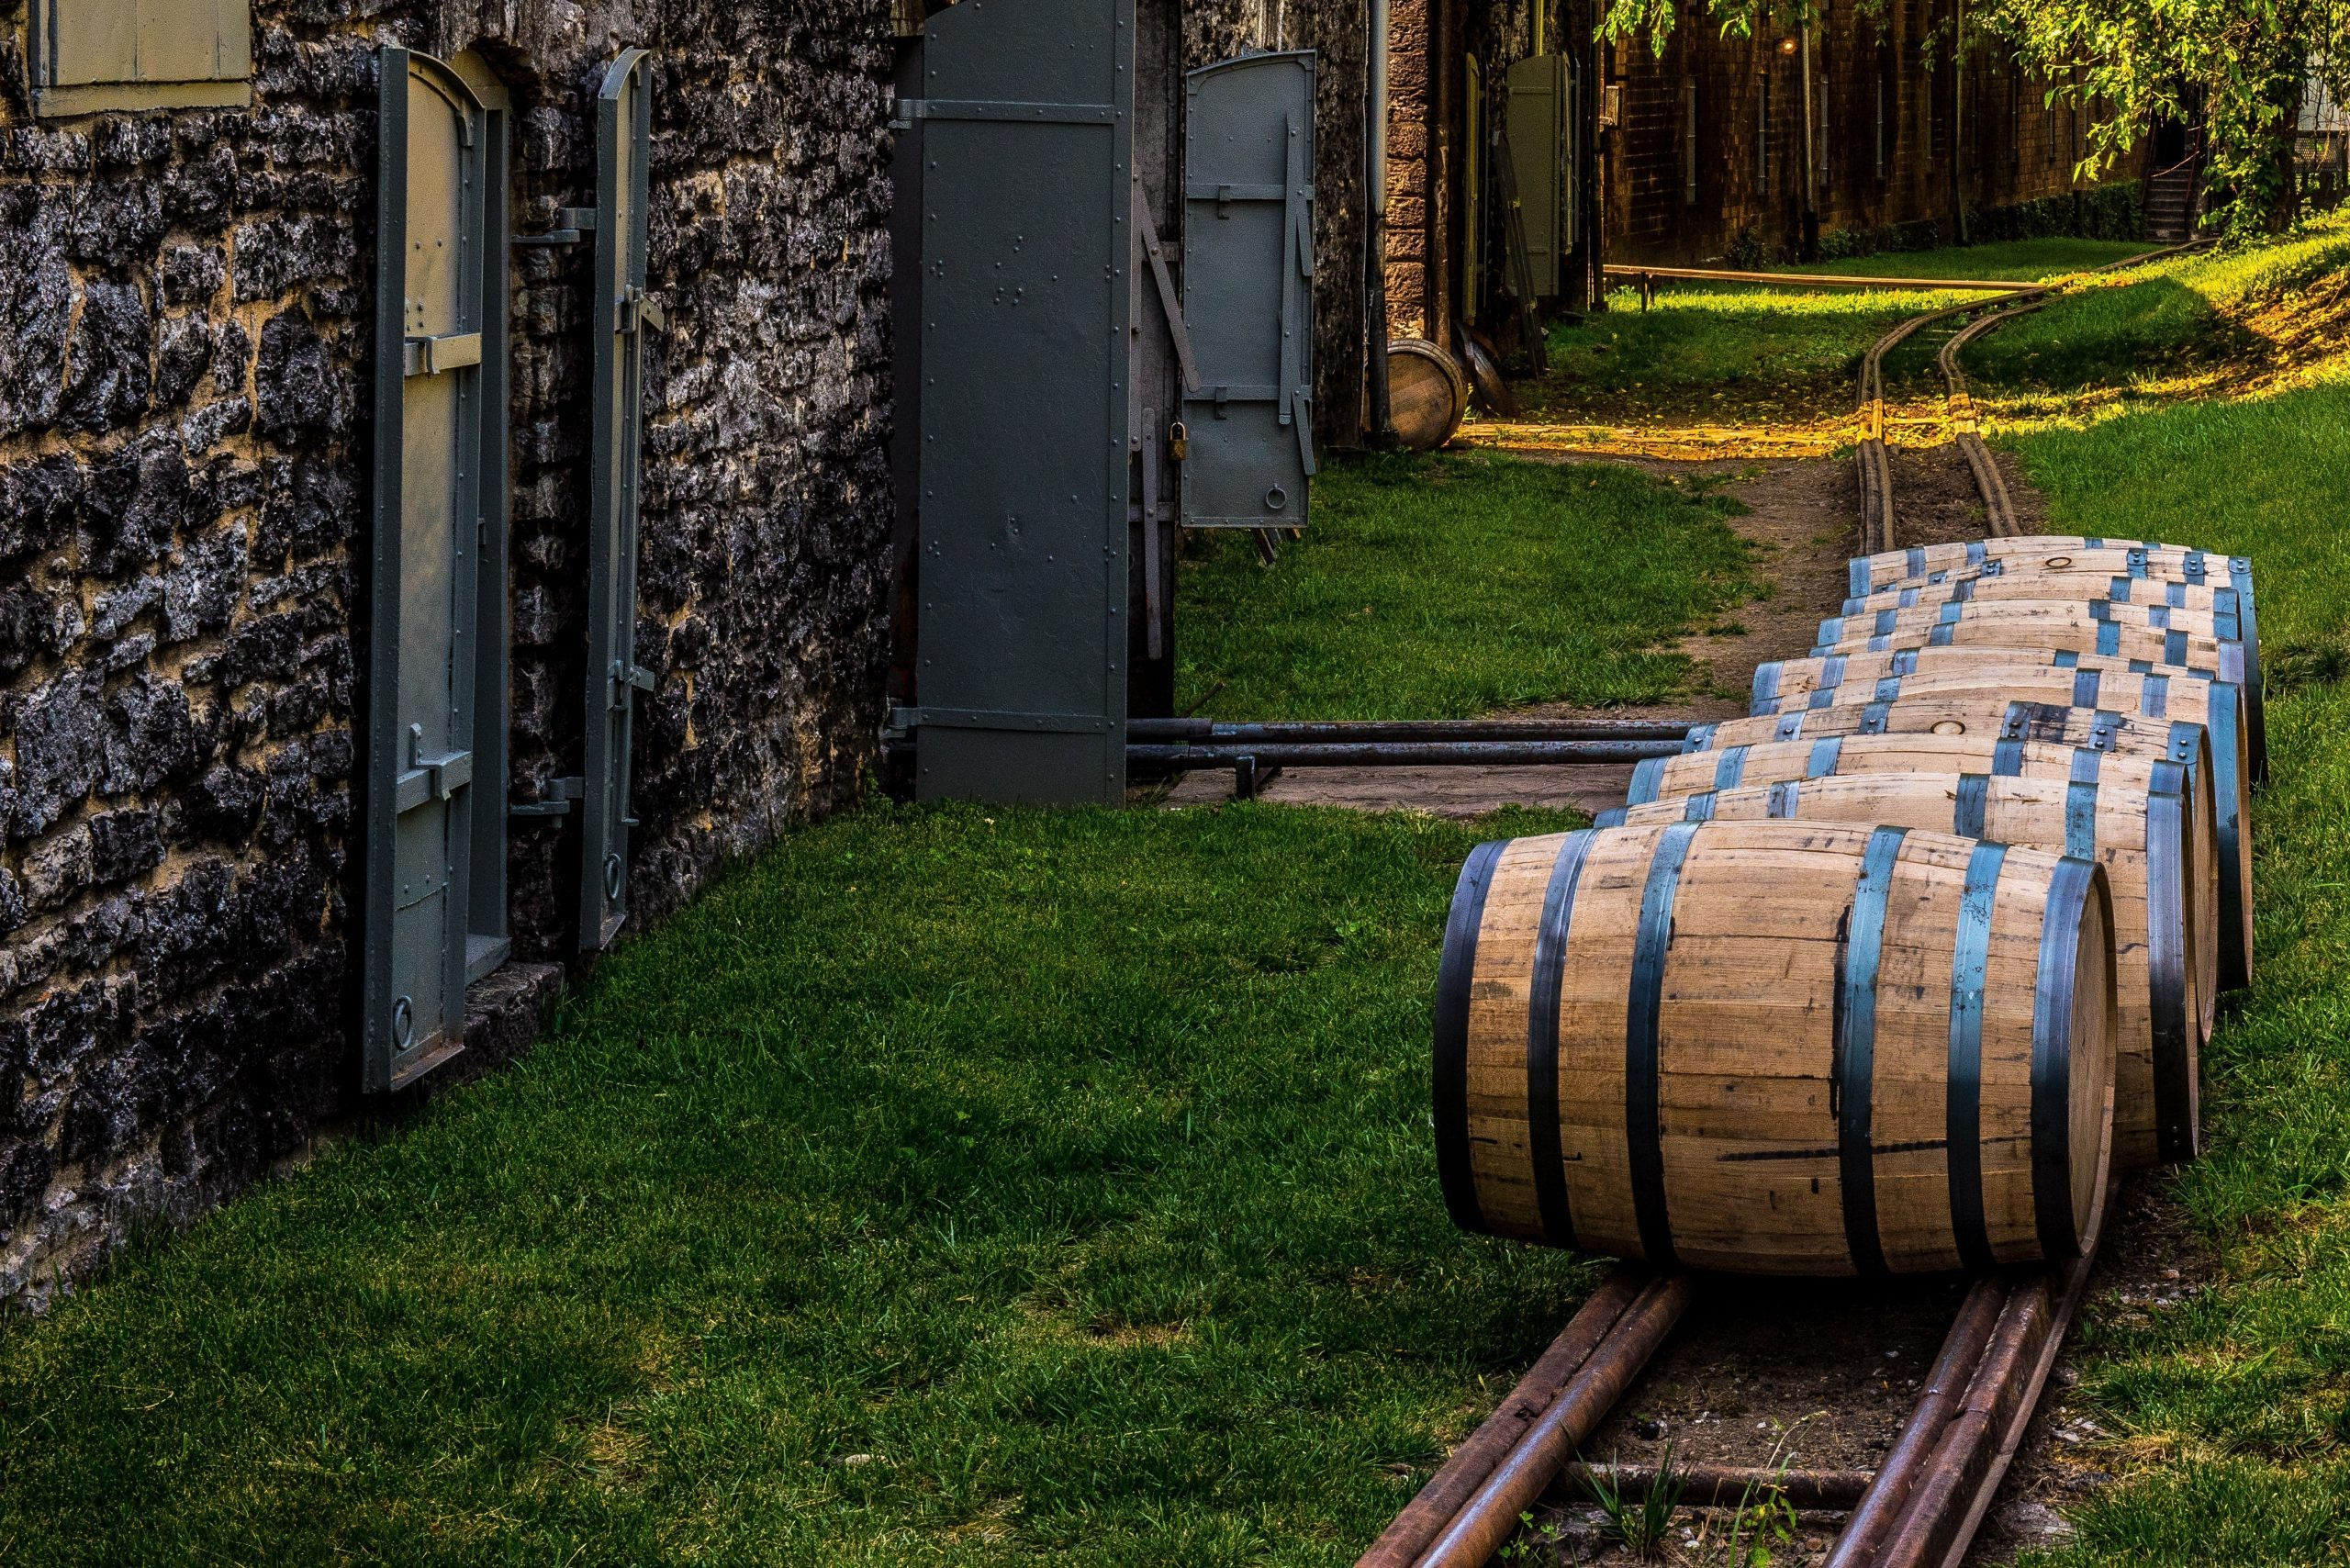 Newly filled bourbon barrels on rail to be transported to warehouse for aging in Kentucky.